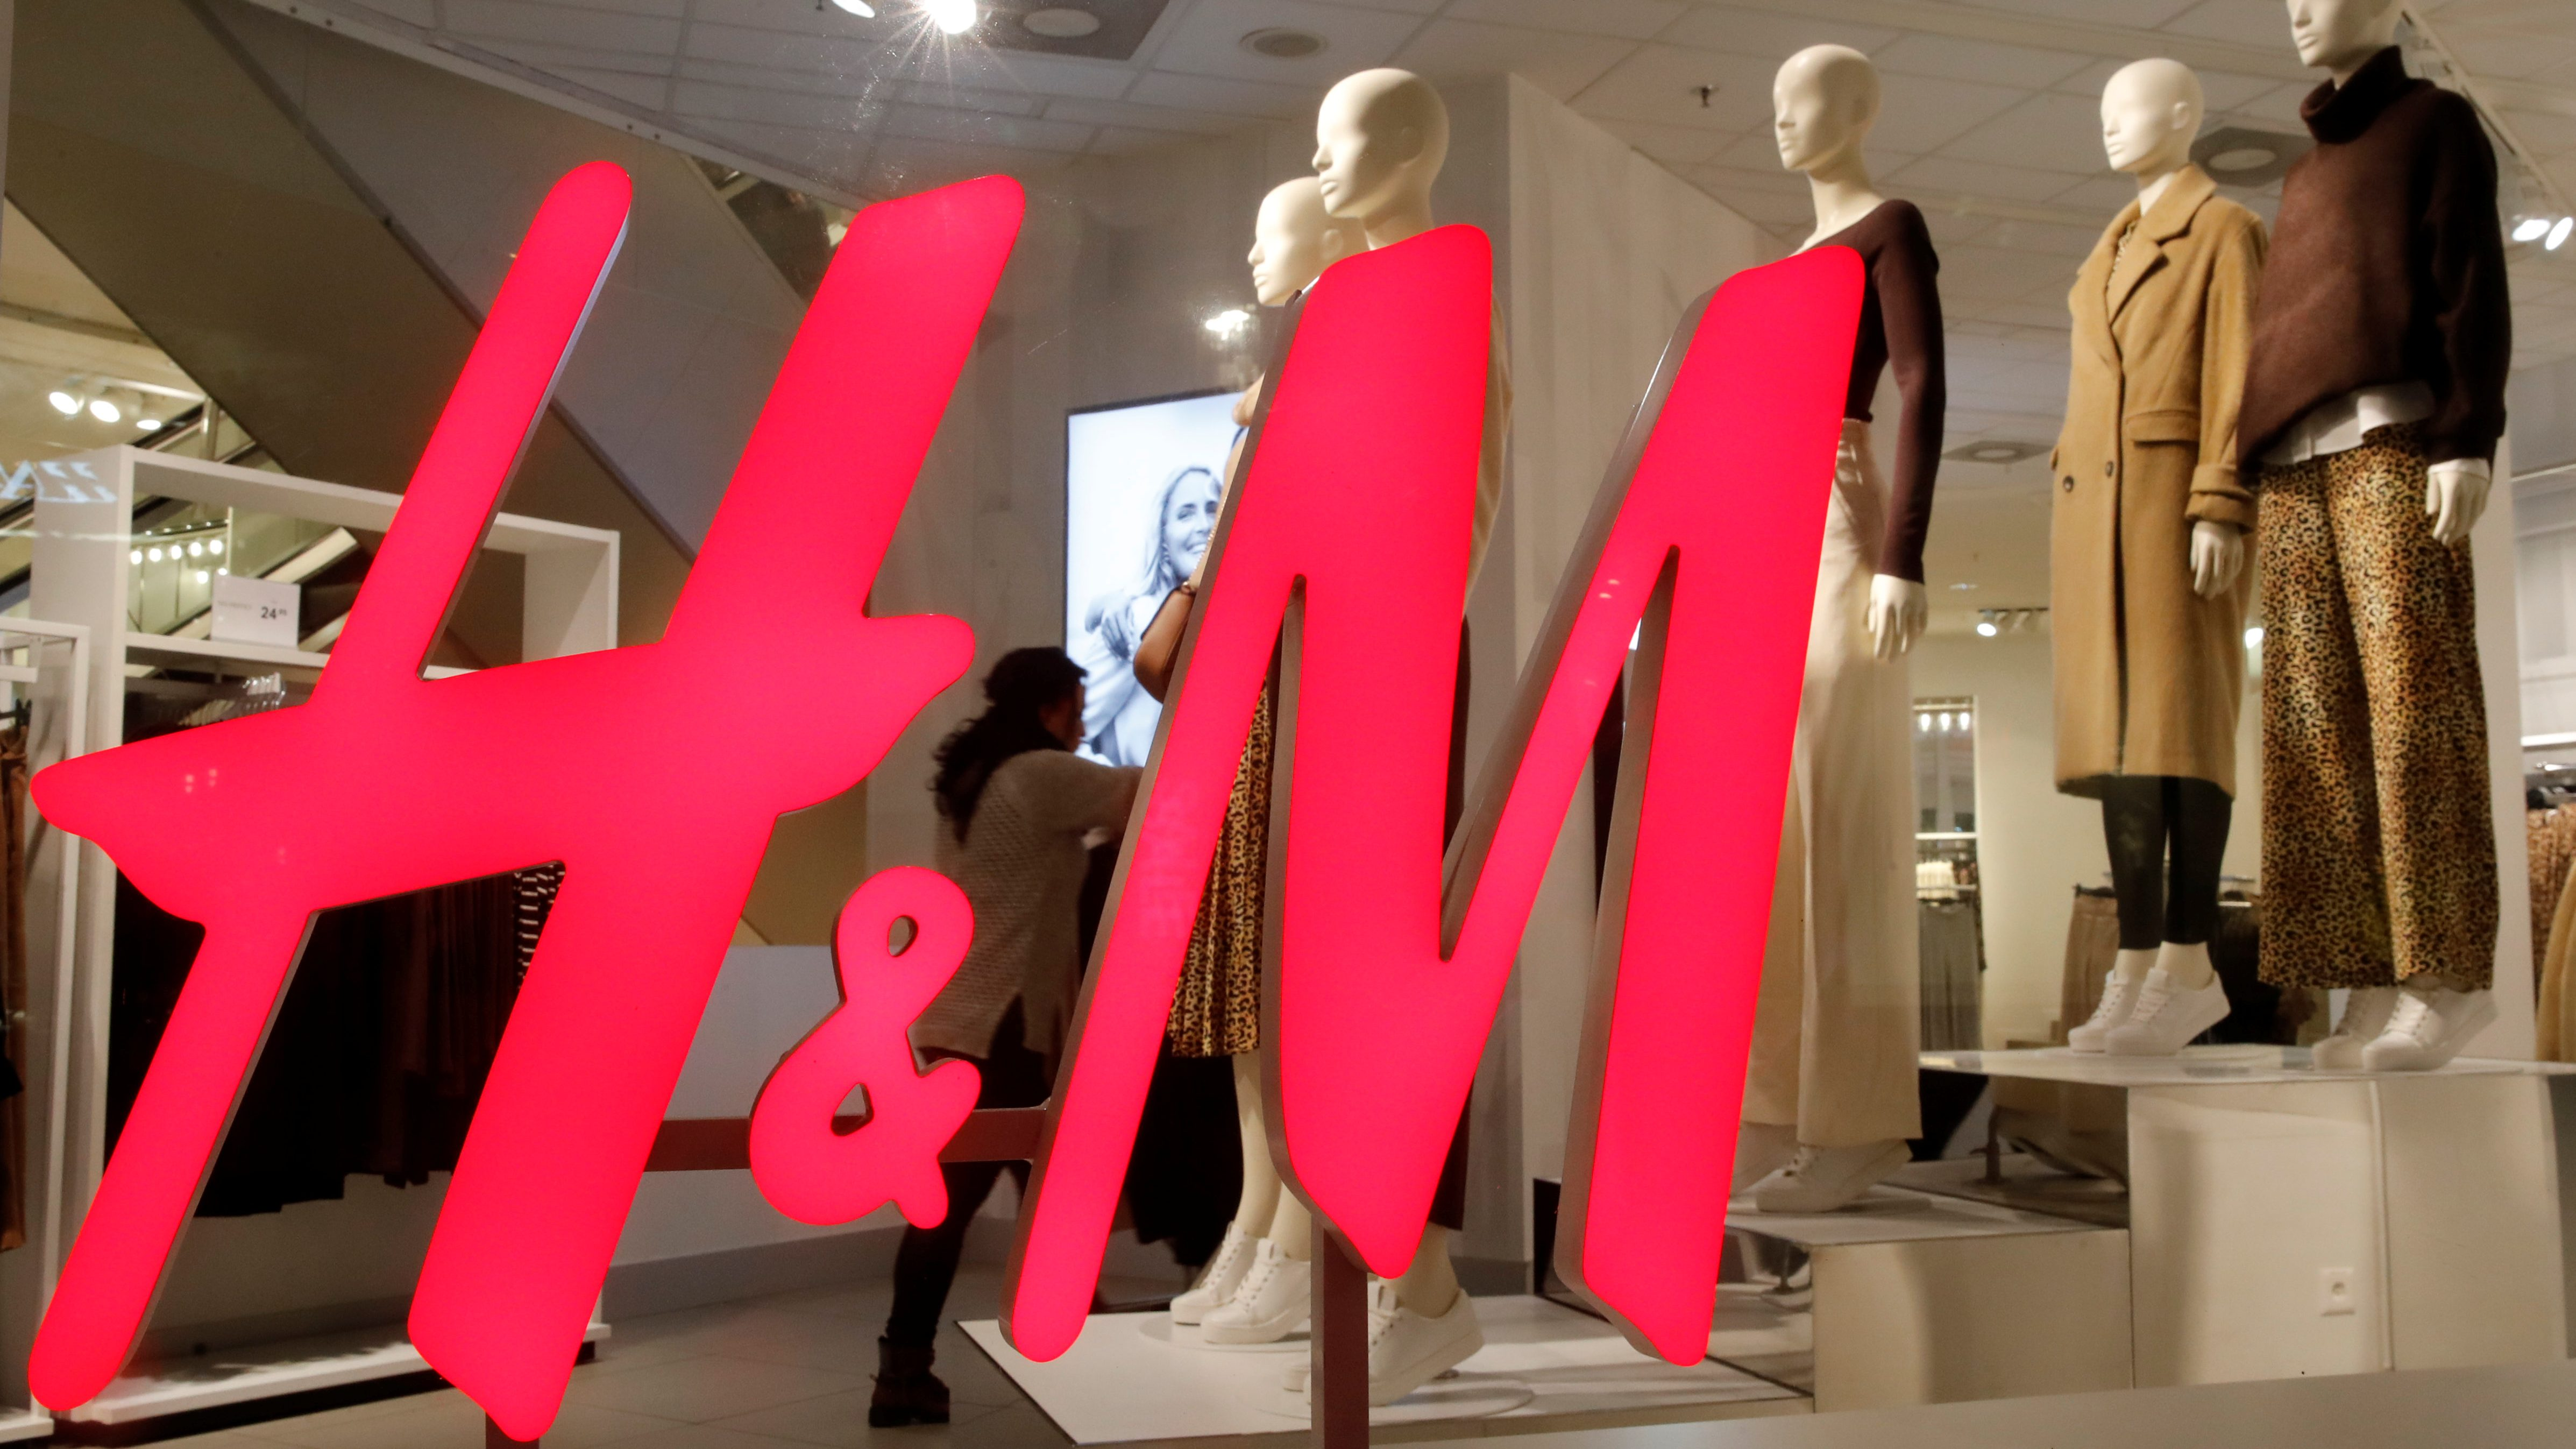 An H&M store window with the company's logo in the foreground and clothes in the background